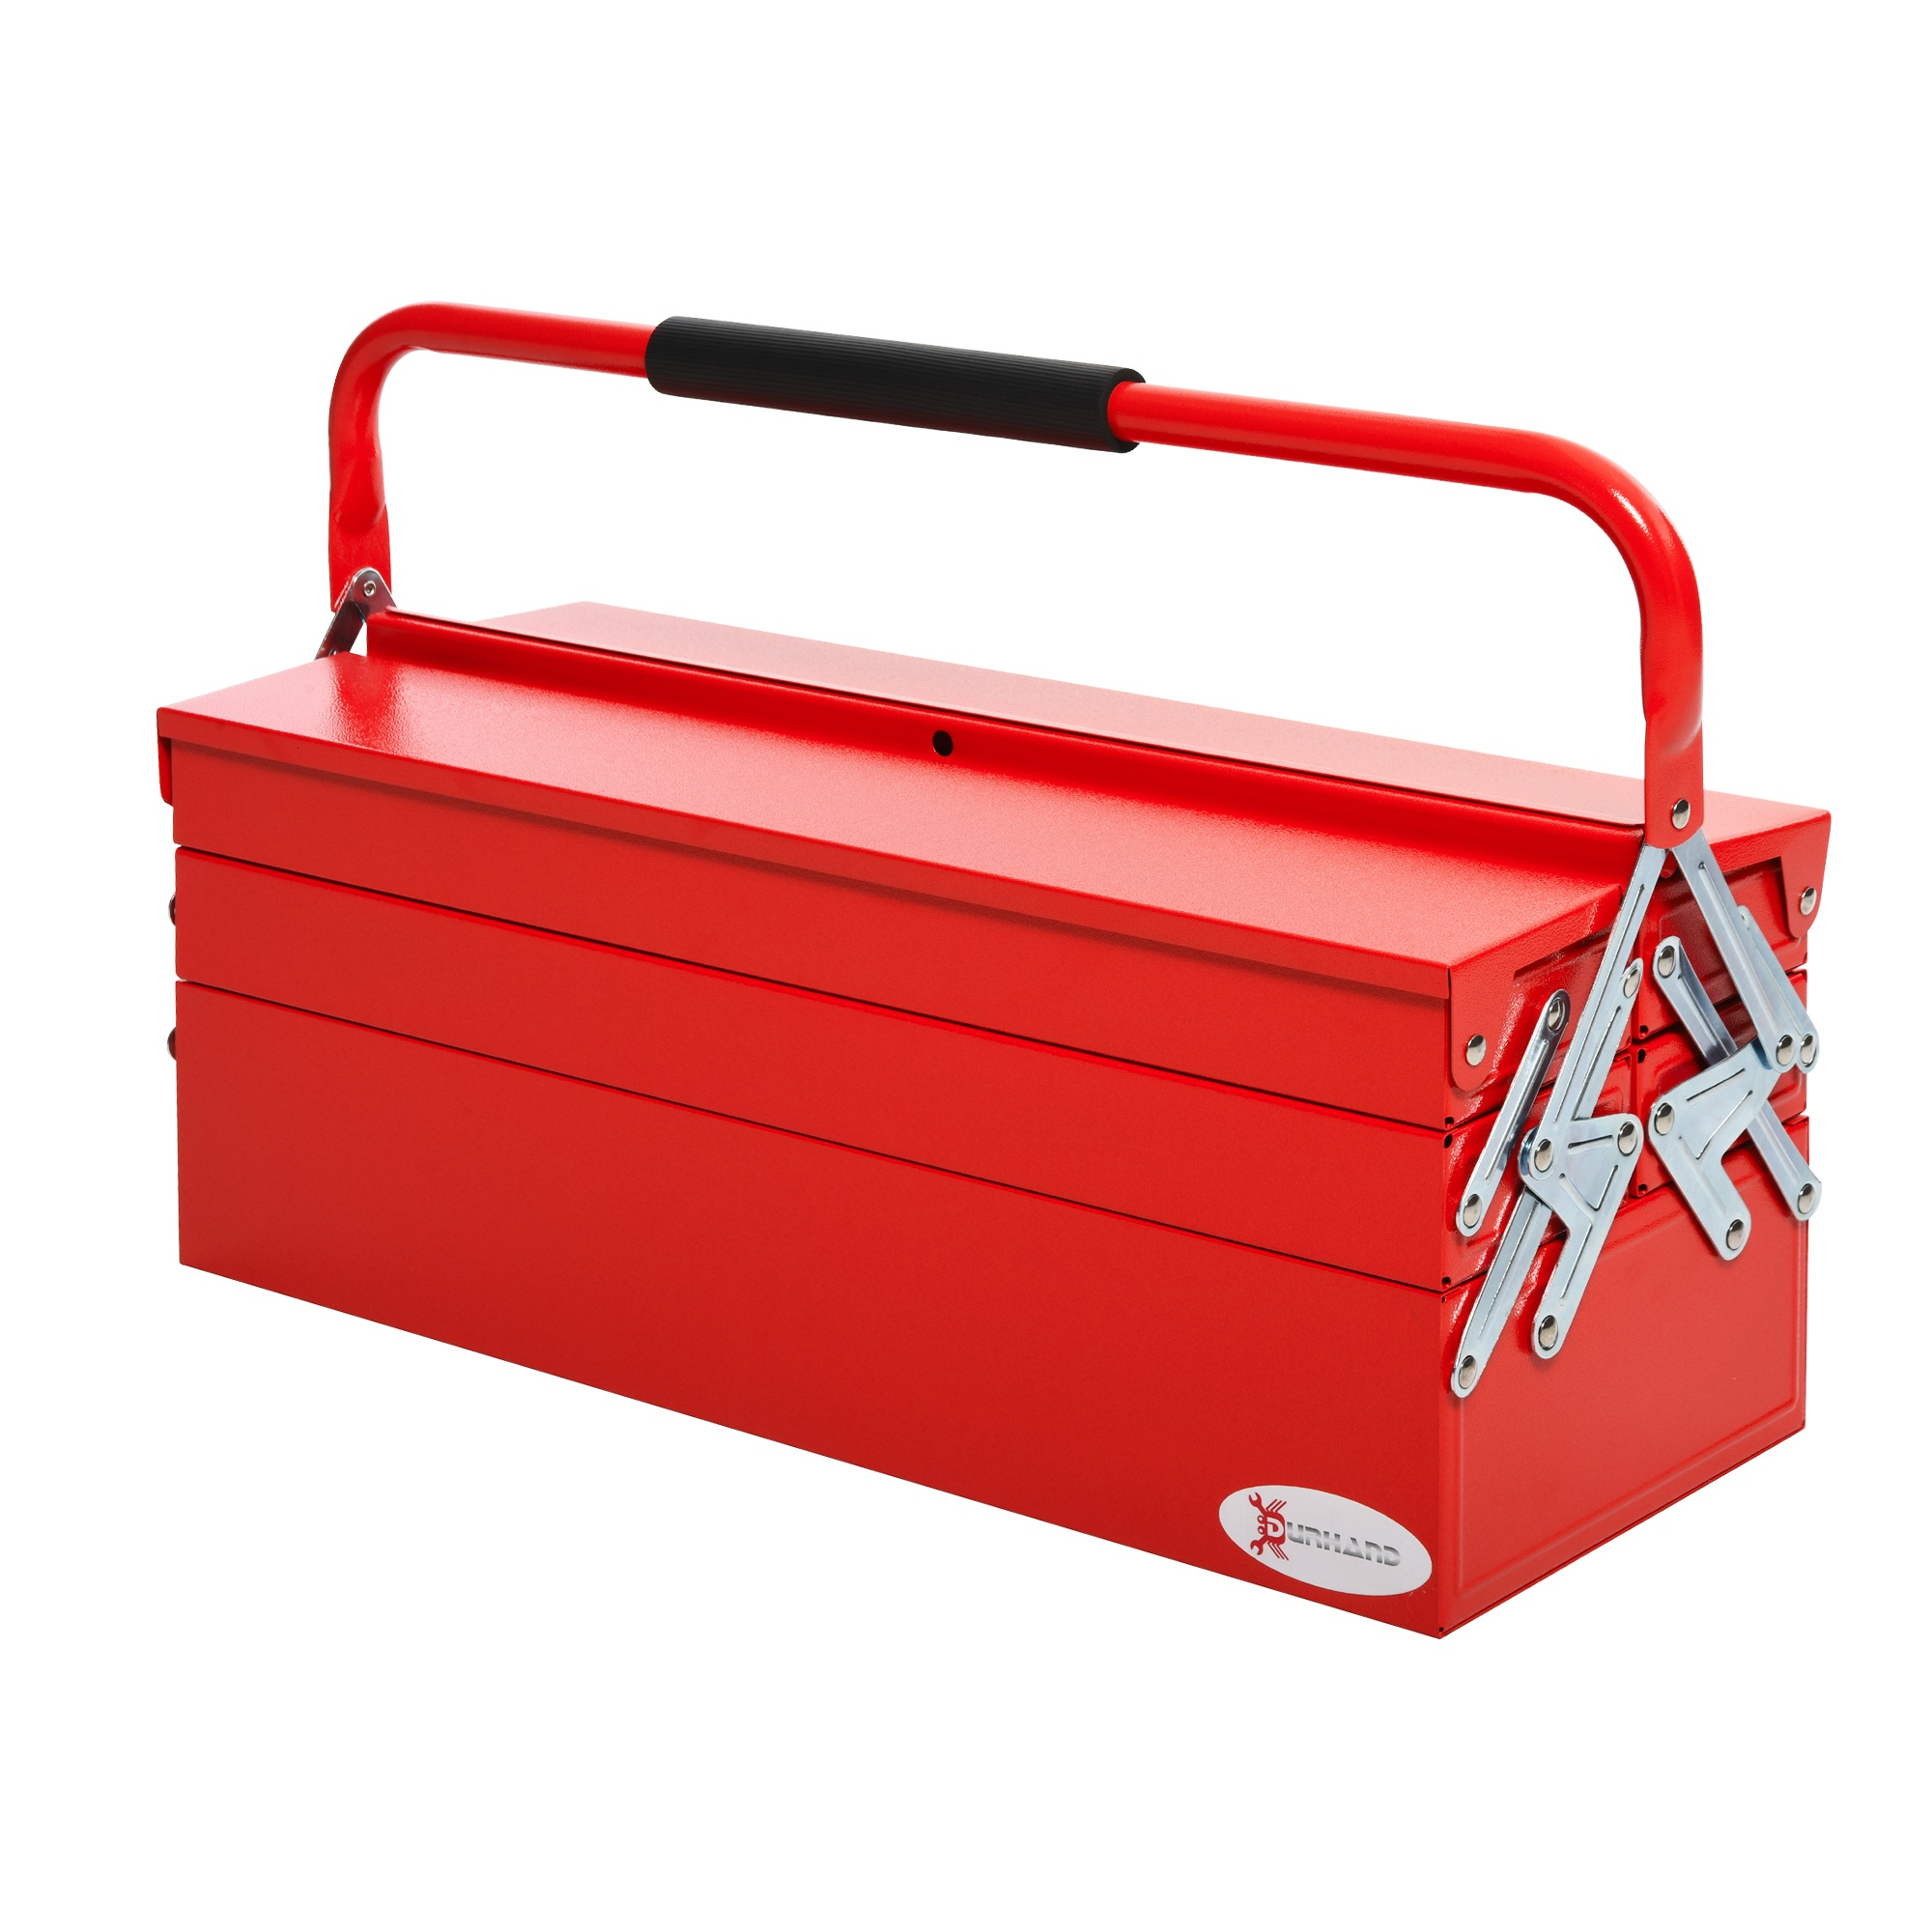 DURHAND Steel 5-Tray Portable Tool Box - Large